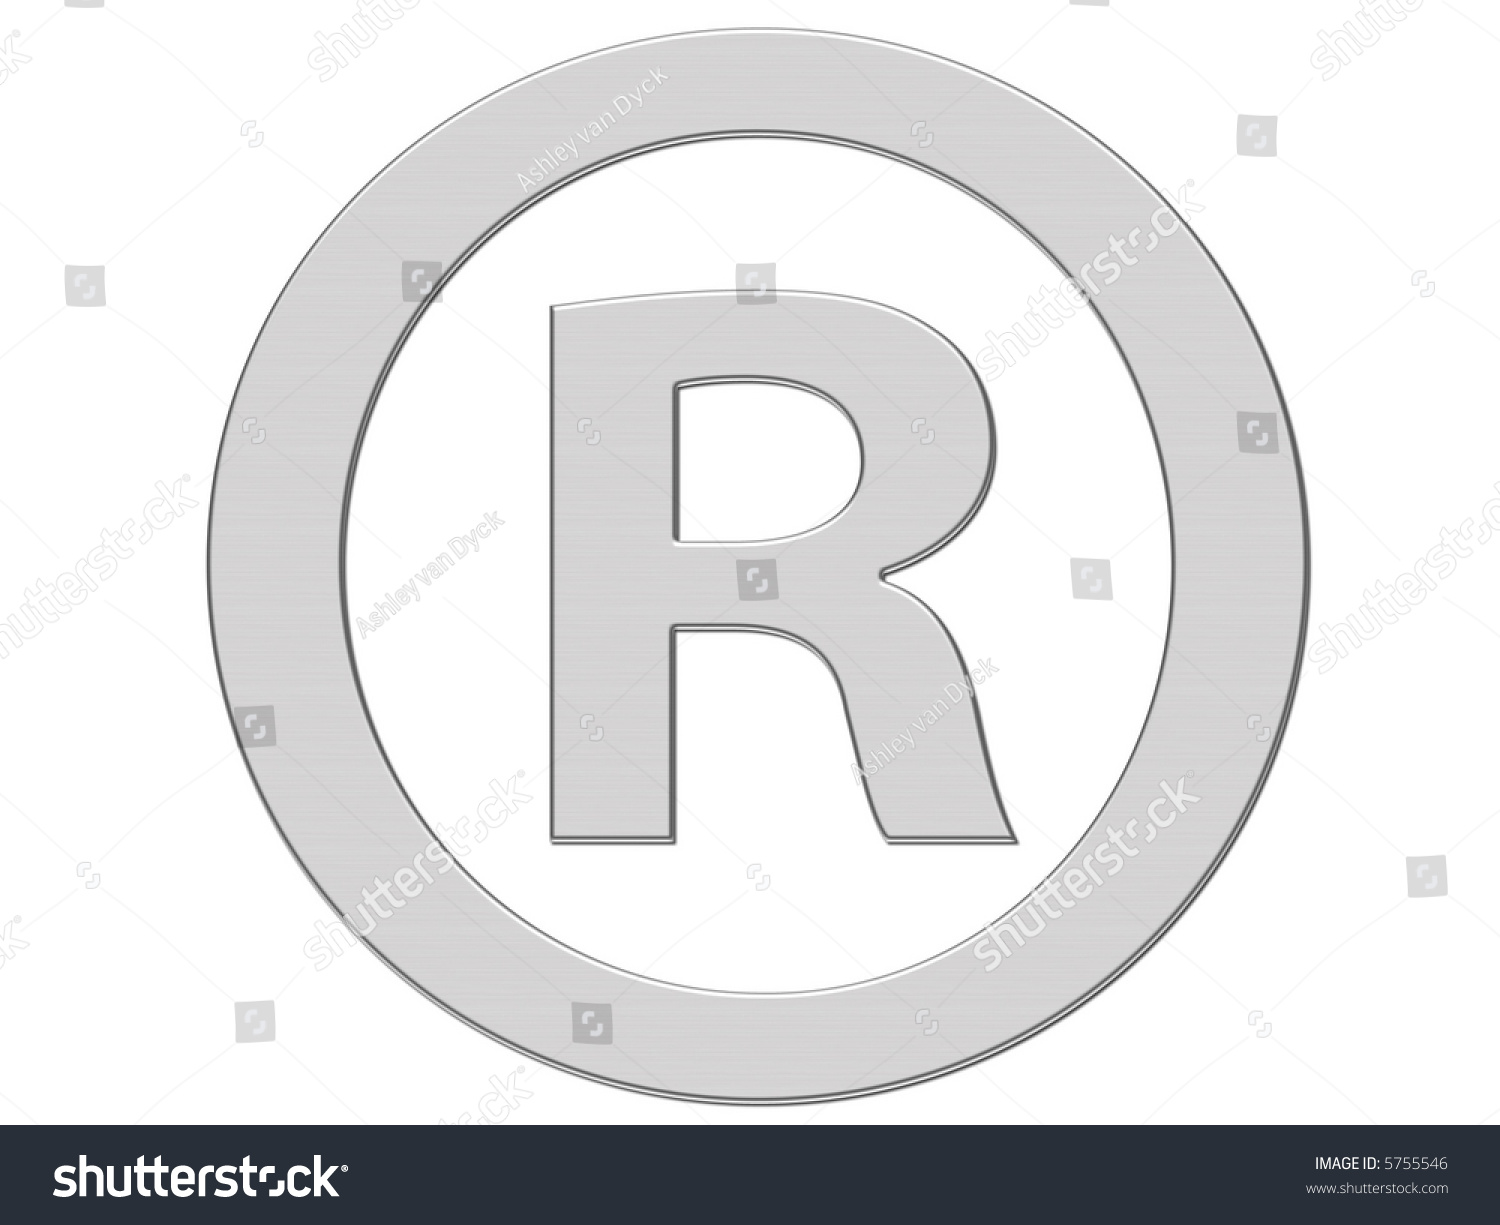 Registered symbol stock illustration 5755546 shutterstock registered symbol biocorpaavc Choice Image